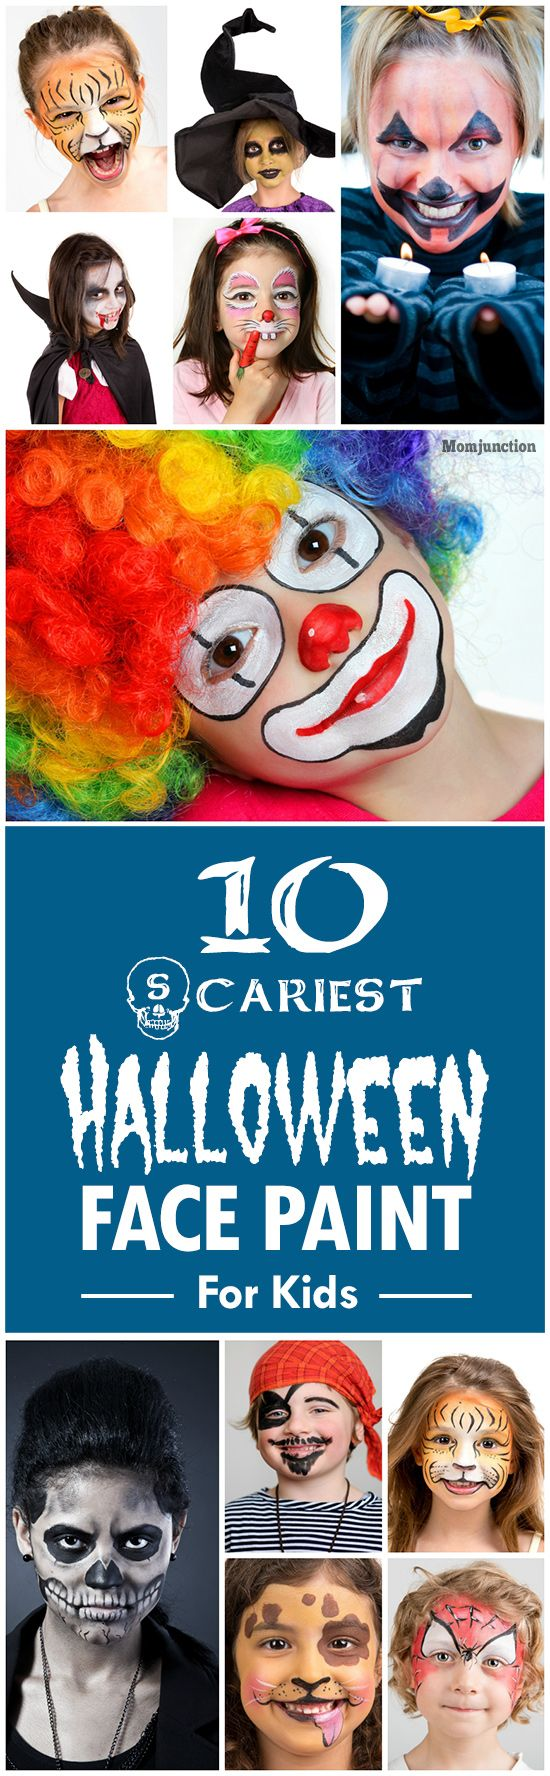 10 Scariest Halloween Face Paint For Kids